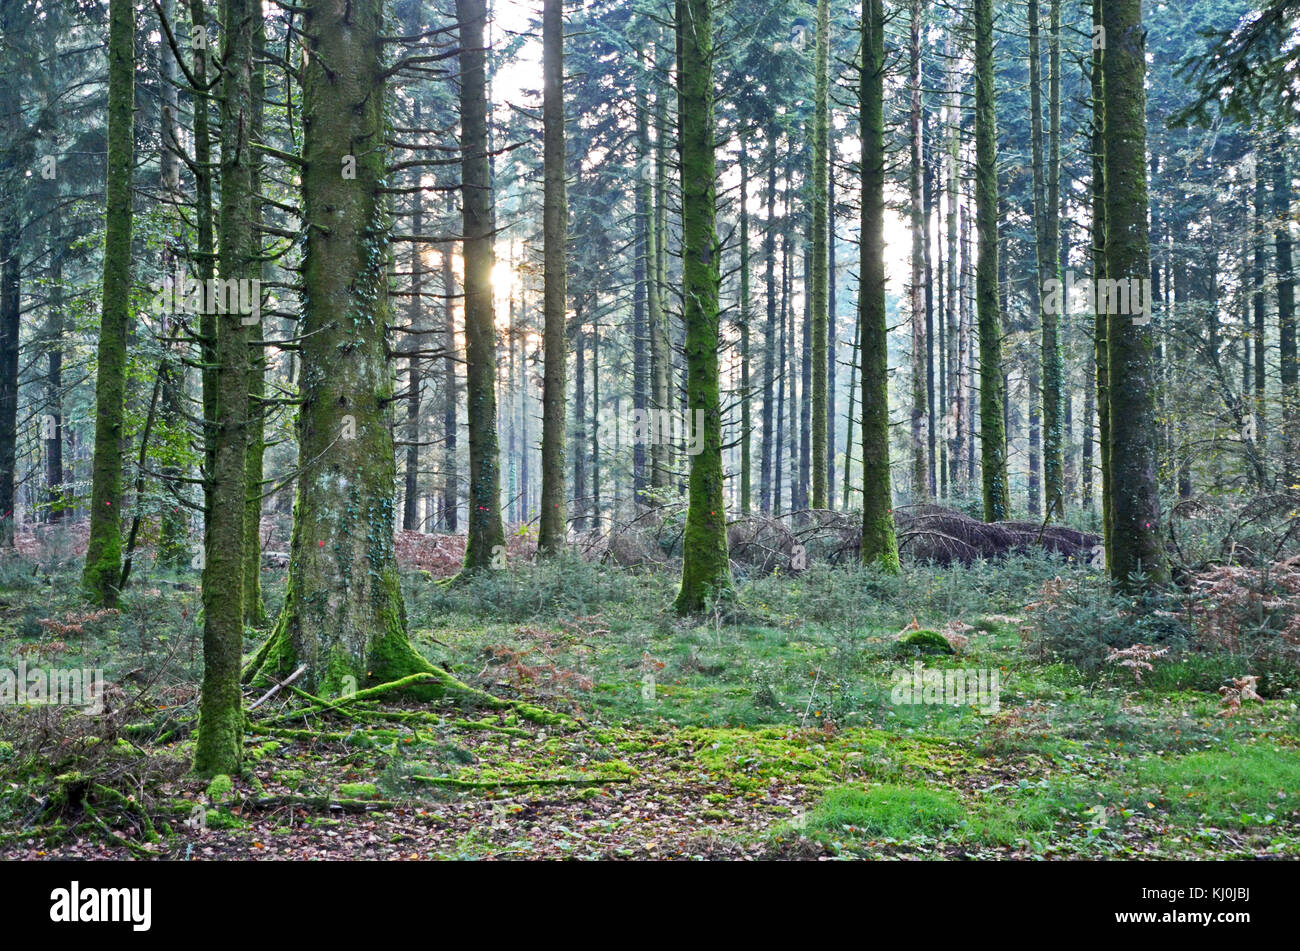 Trees in the Forest of Saint-Sever, Normandy, France - Stock Image